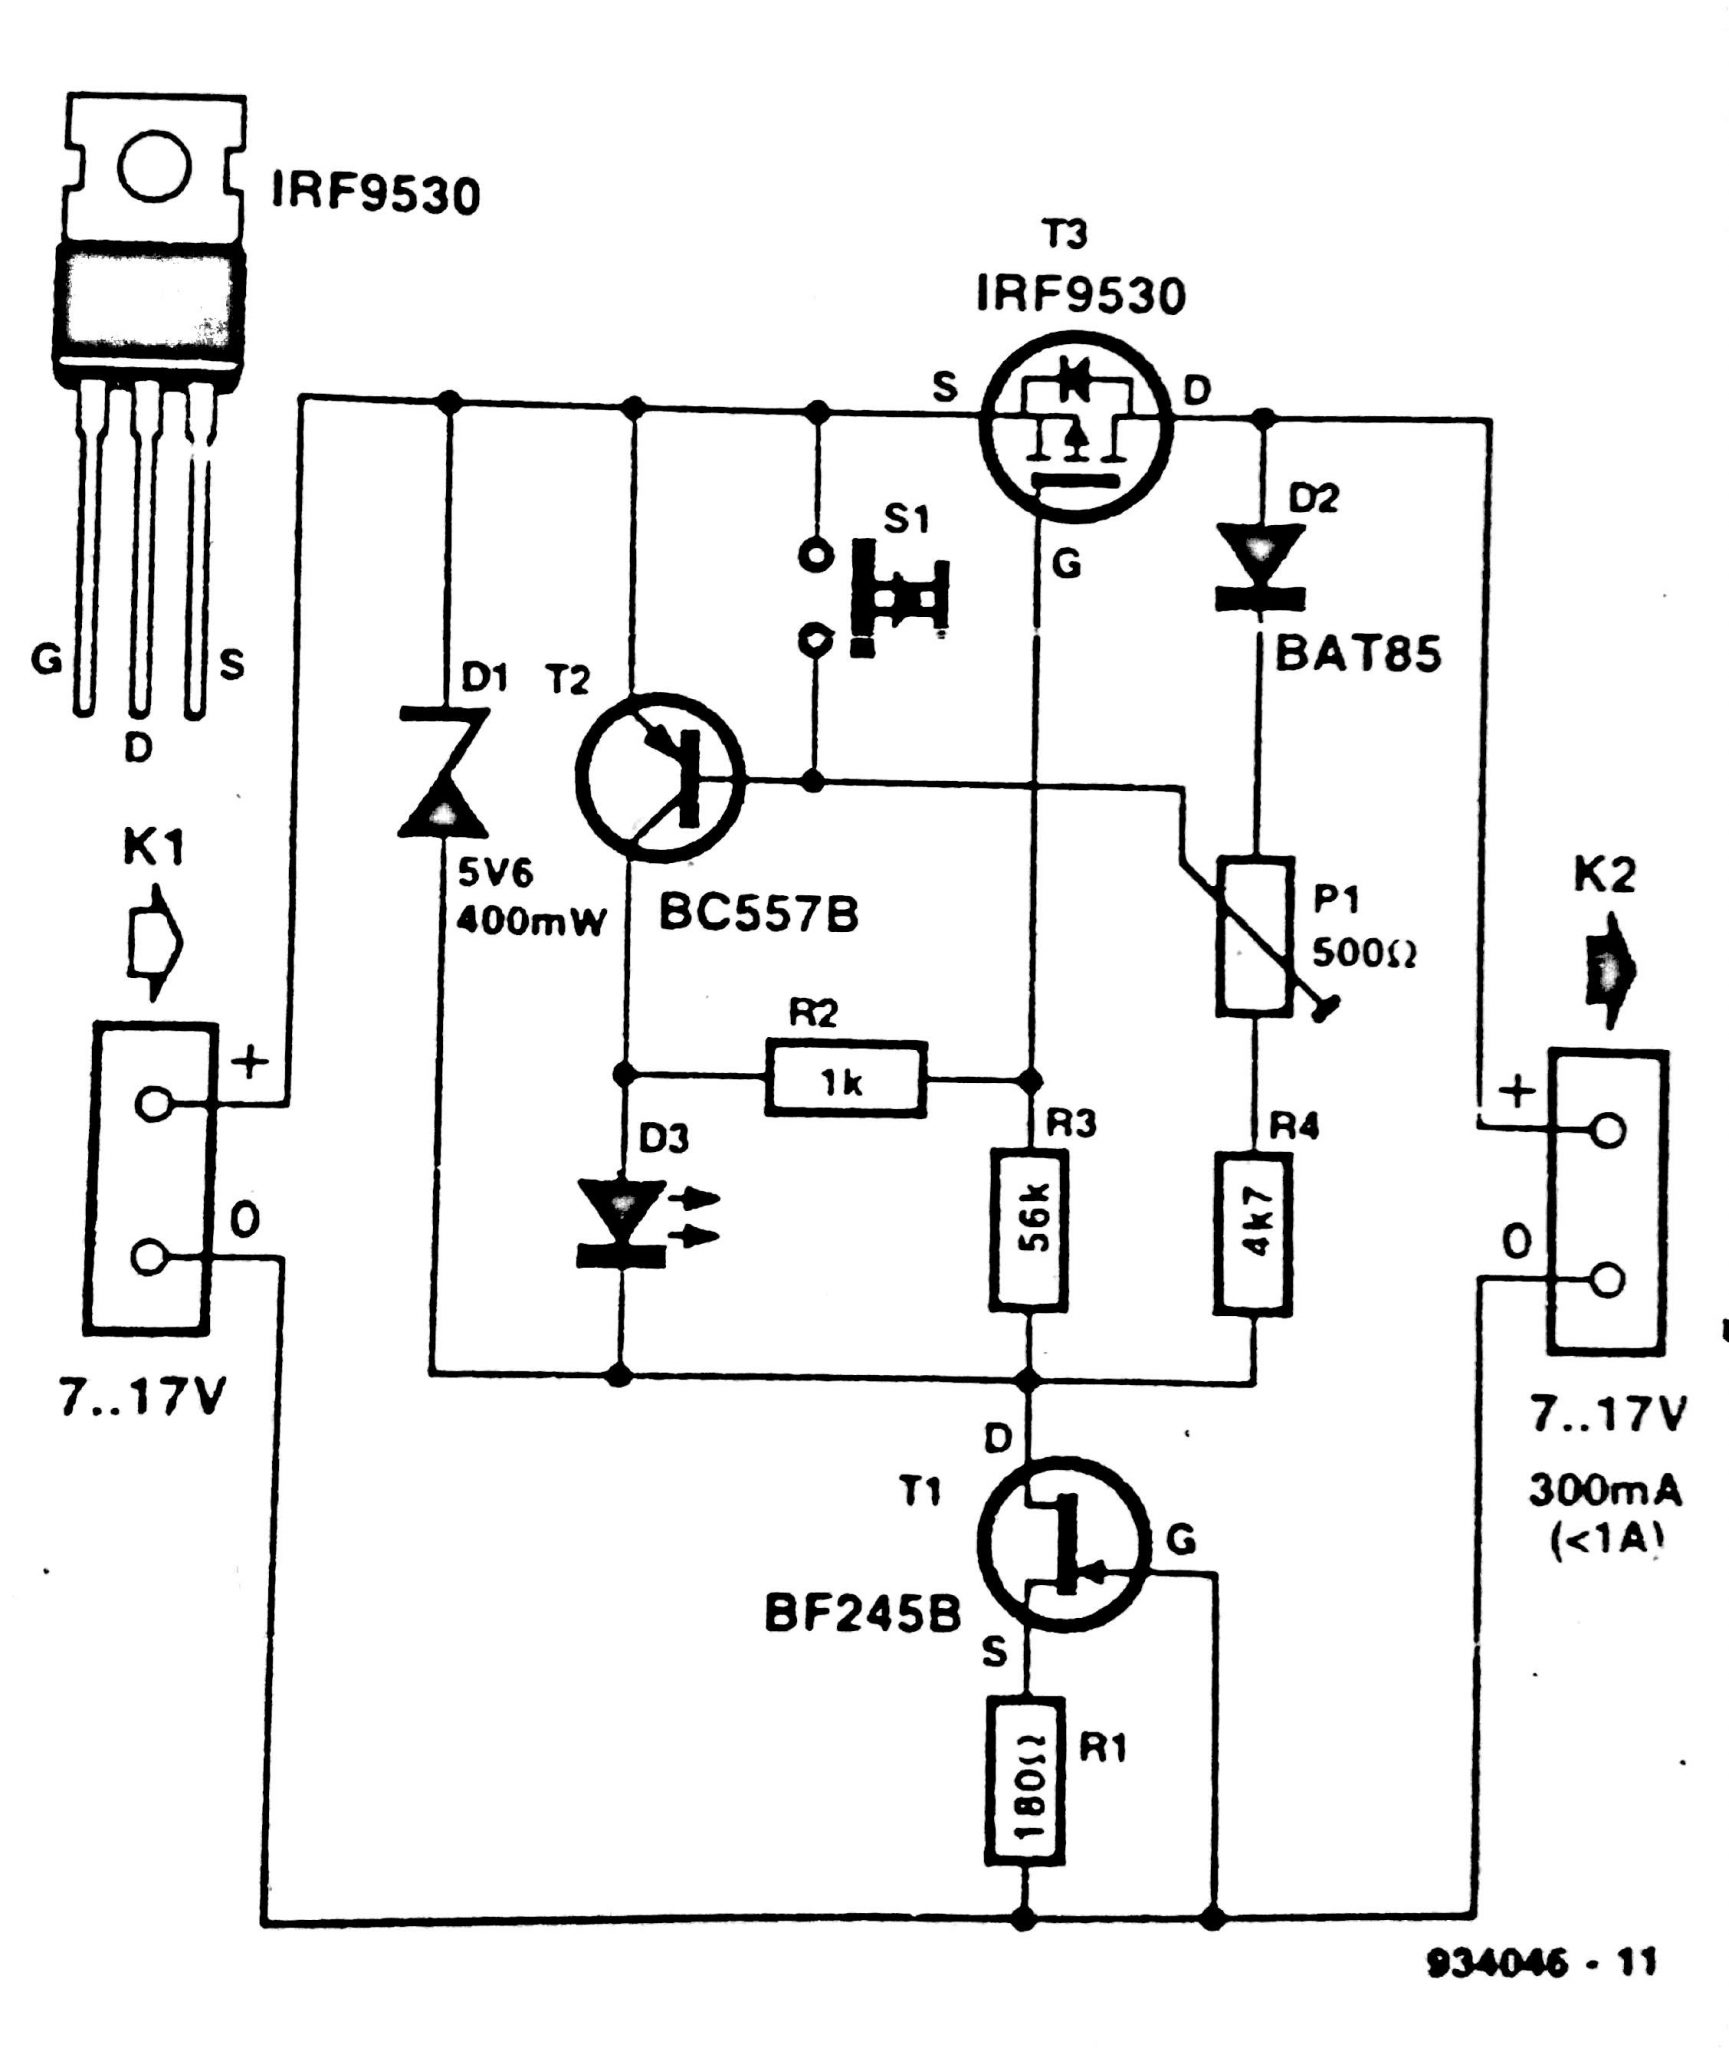 T1 Loopback Wiring Diagram